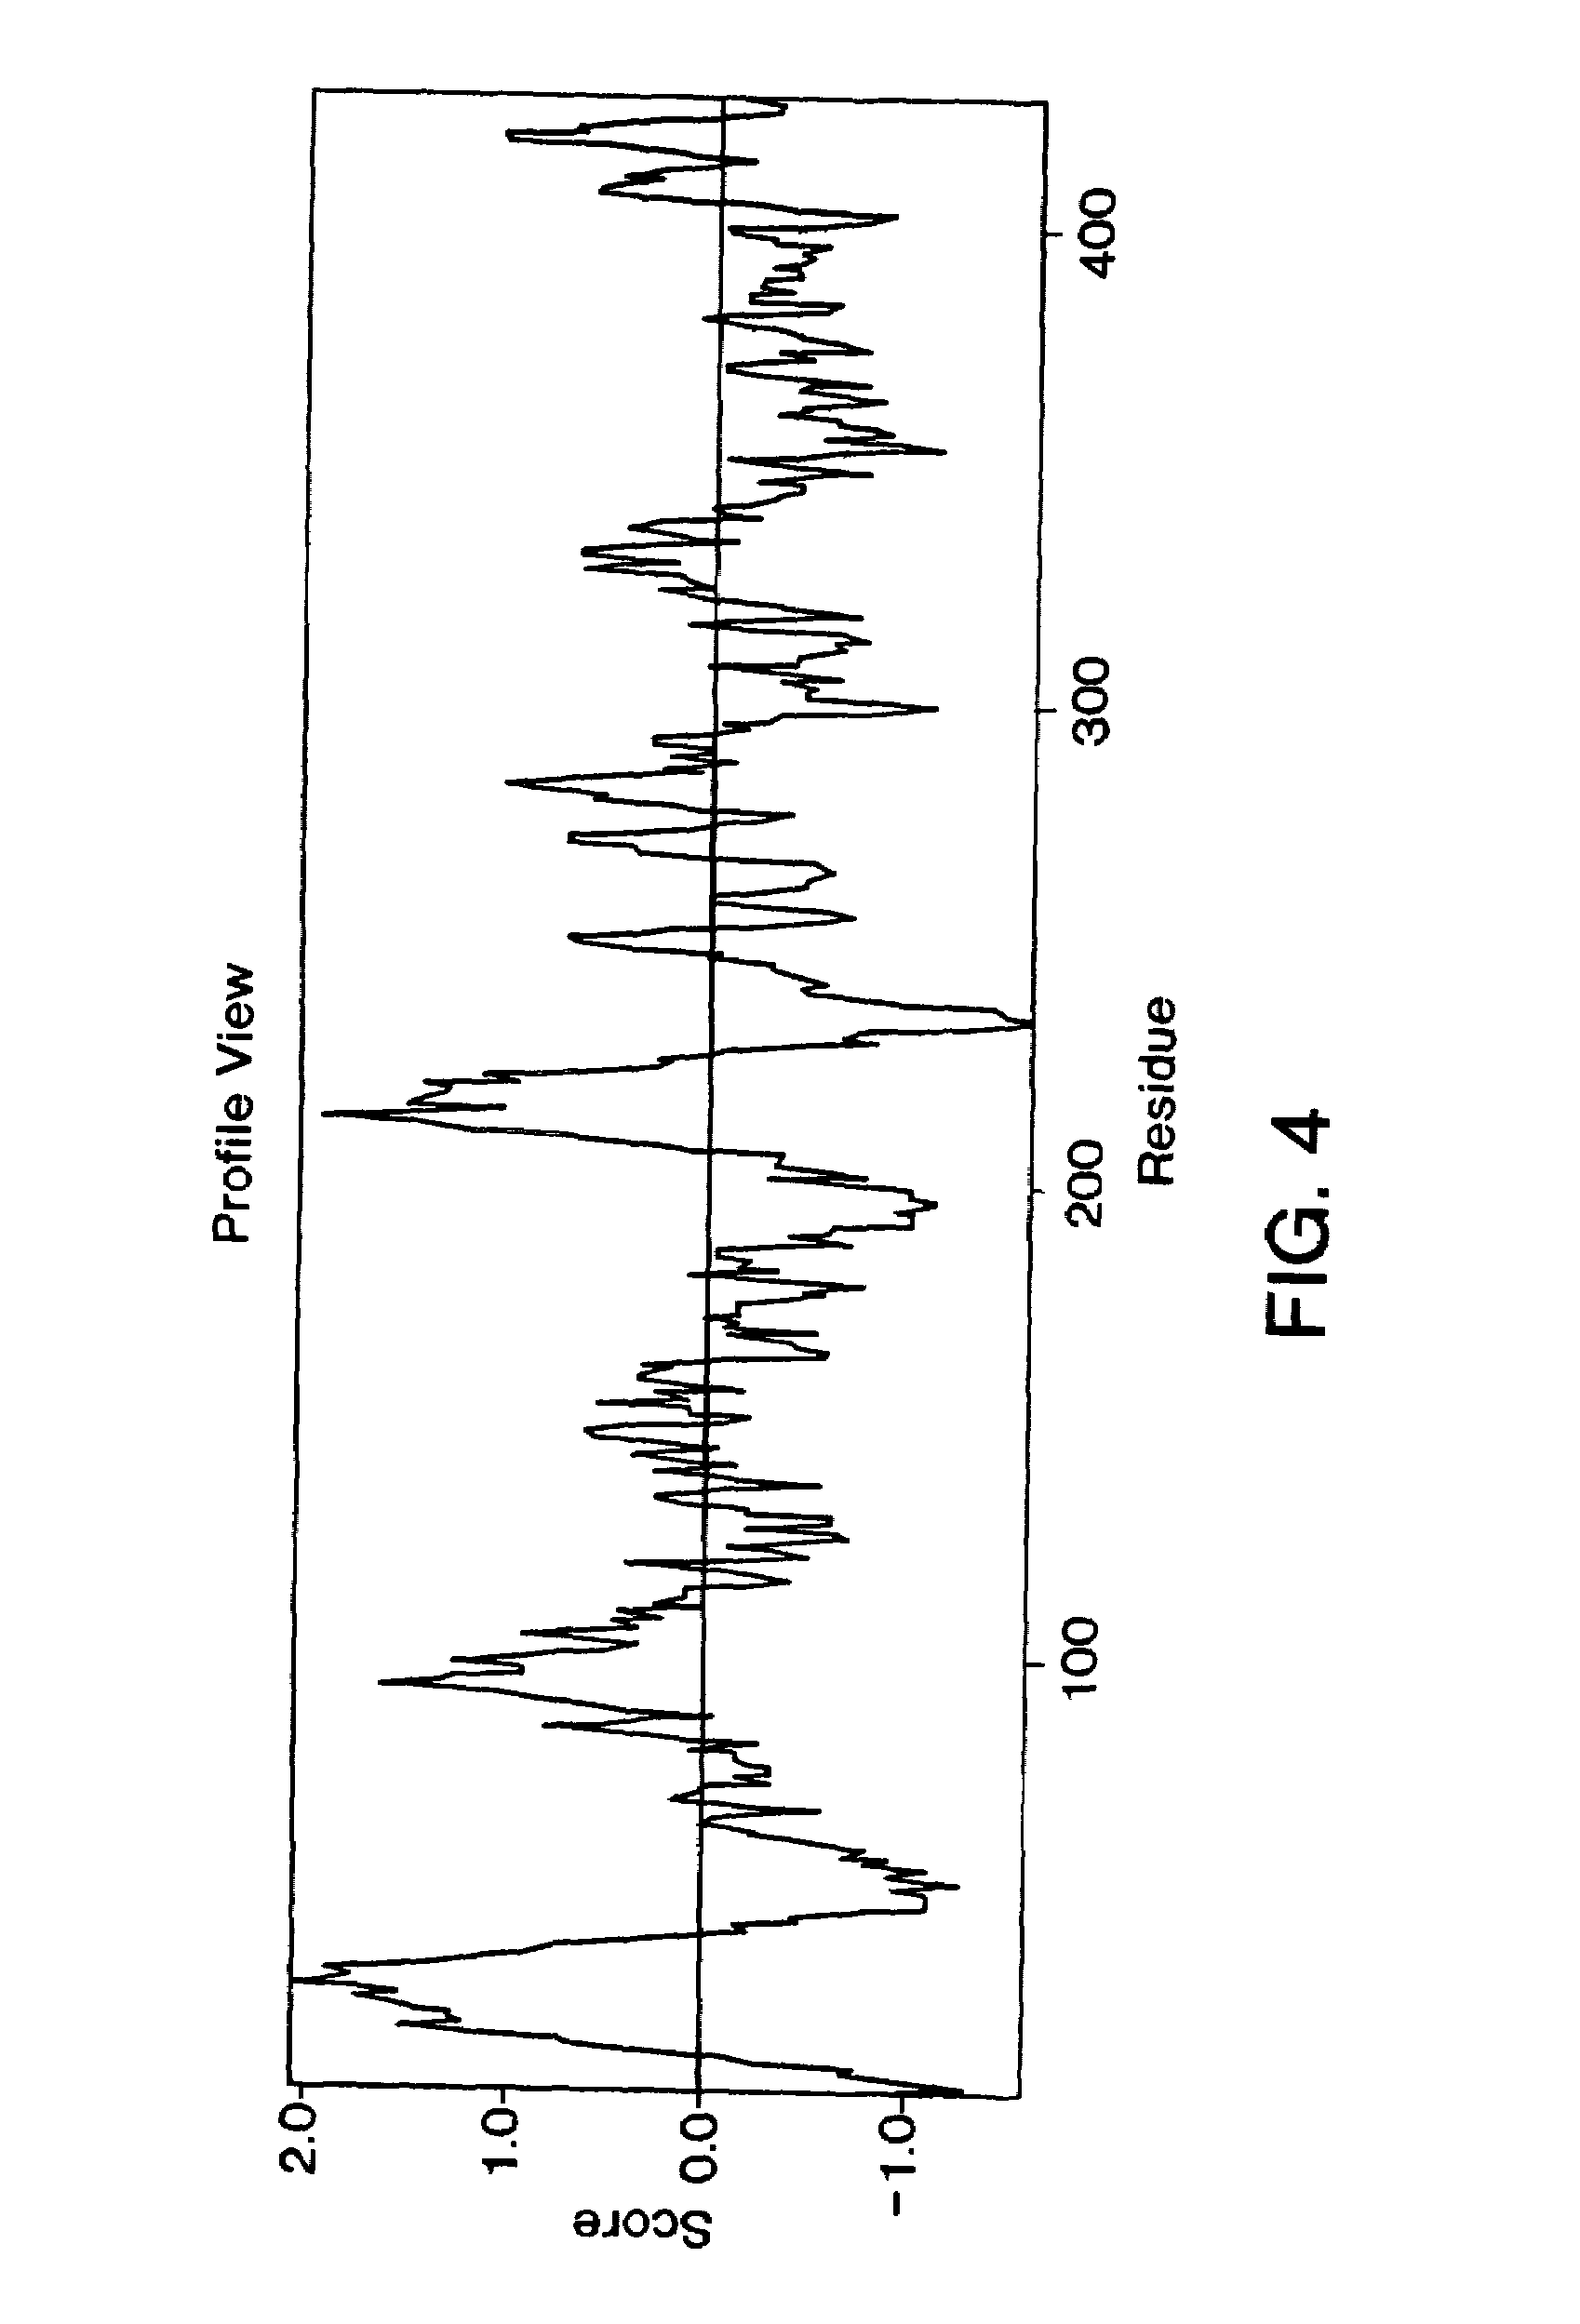 Patent Us7247717 Polynucleotide Encoding A Novel Human Serpin And Hc12spi Timing Diagrams C Program For Sending Data To Themax 522 Drawing